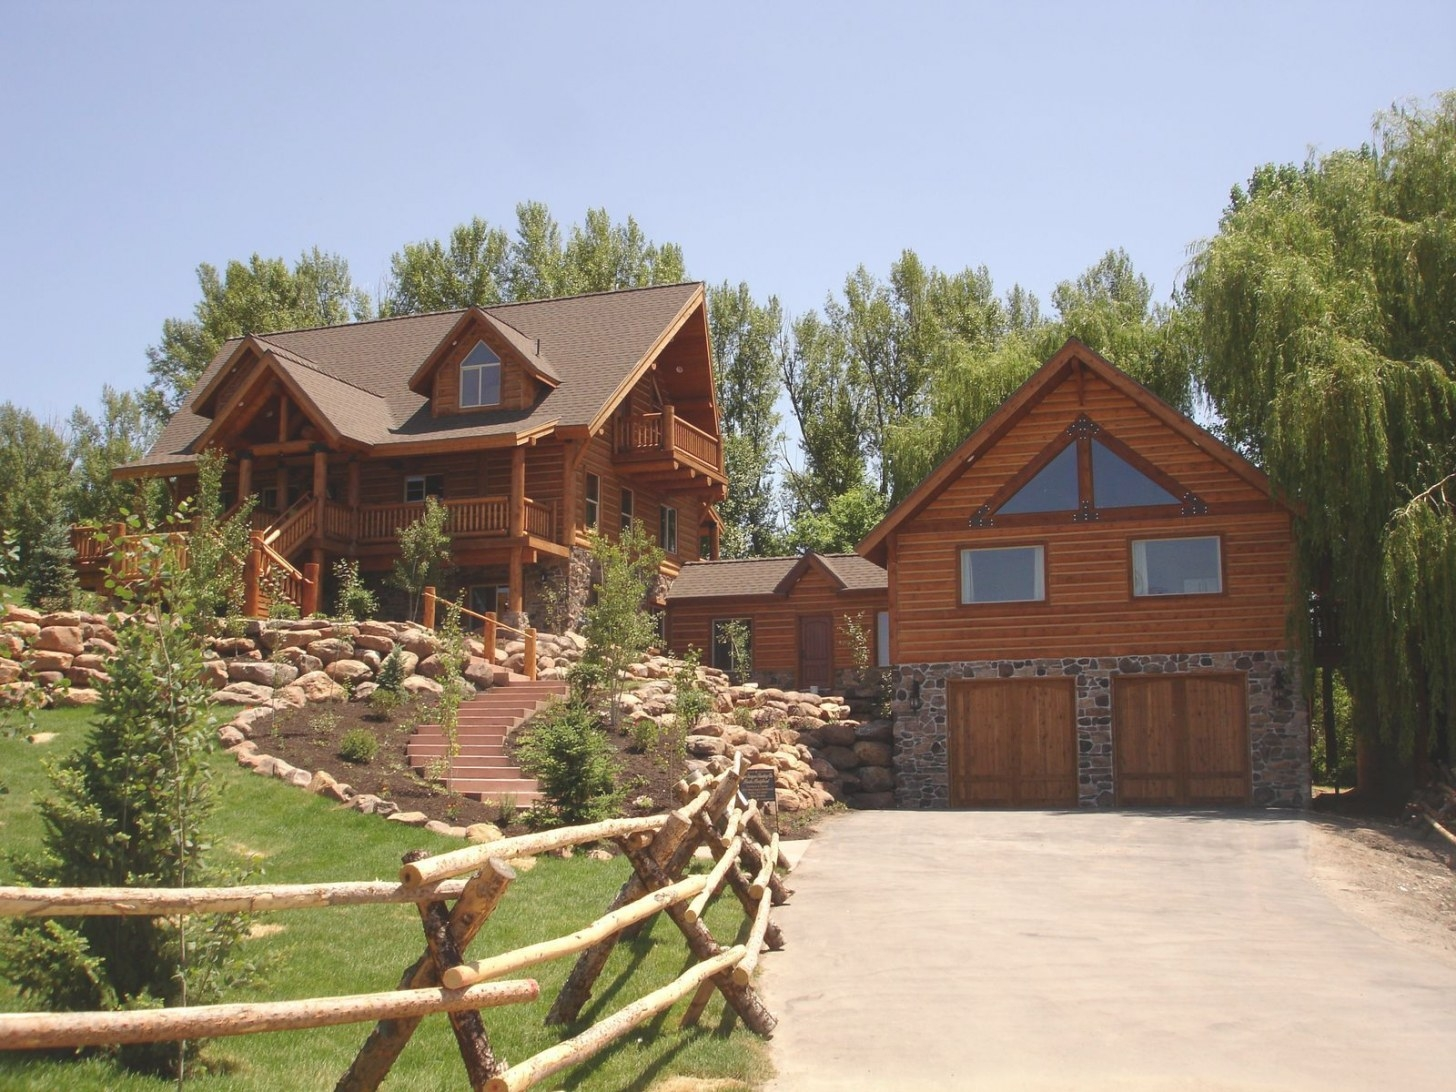 The Ultimate In Log Home Living Is In A Whisper Creek Log inside Whisper Creek Log Homes